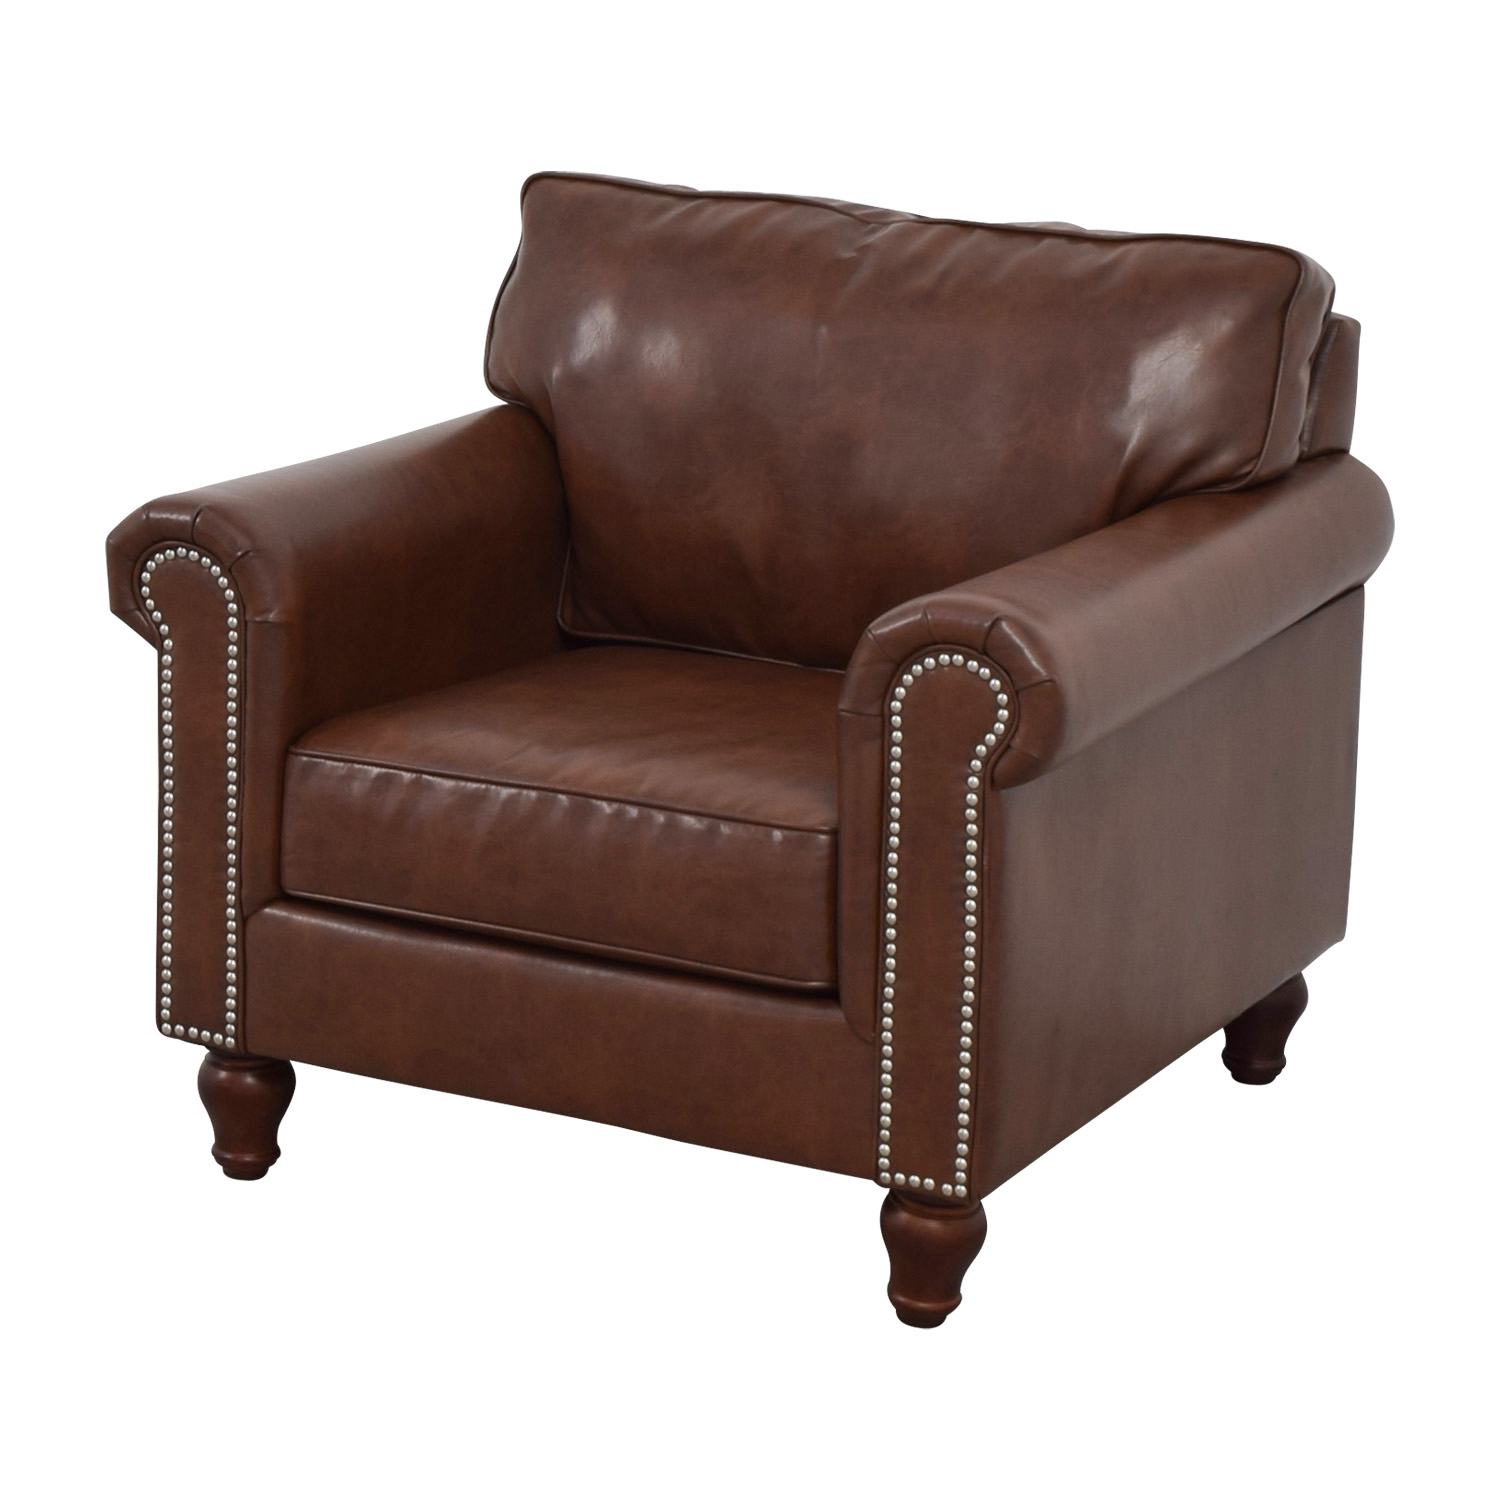 Pier 1 Imports Pier 1 Imports Alton Tobacco Brown Rolled Nailhead Armchair coupon